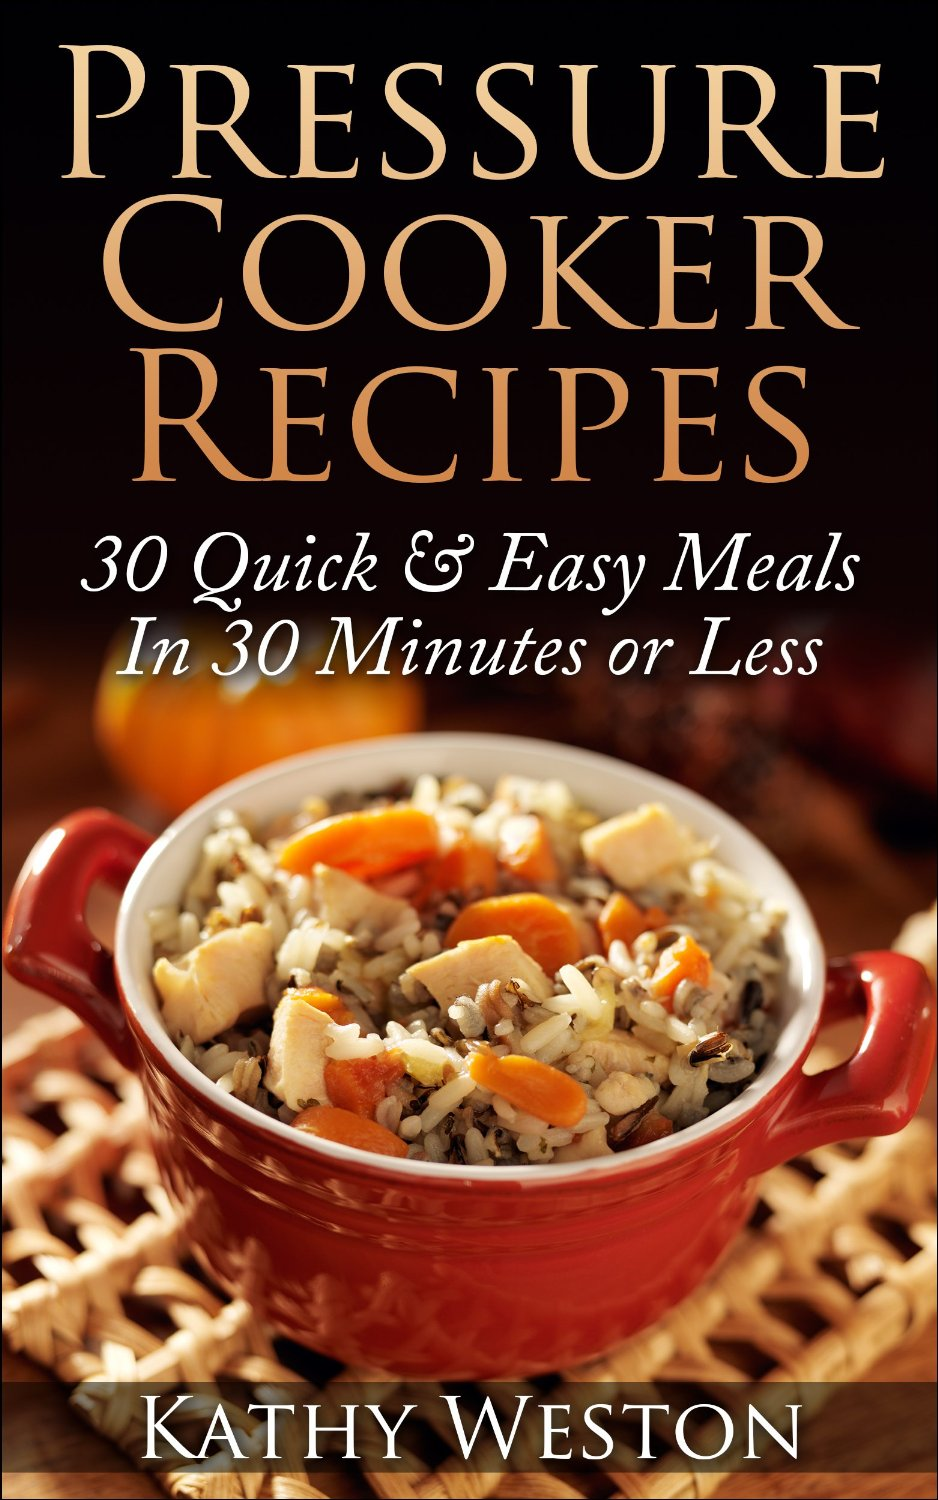 Pressure Cooker Recipes: 30 Quick & Easy Meals In 30 Minutes or Less free download